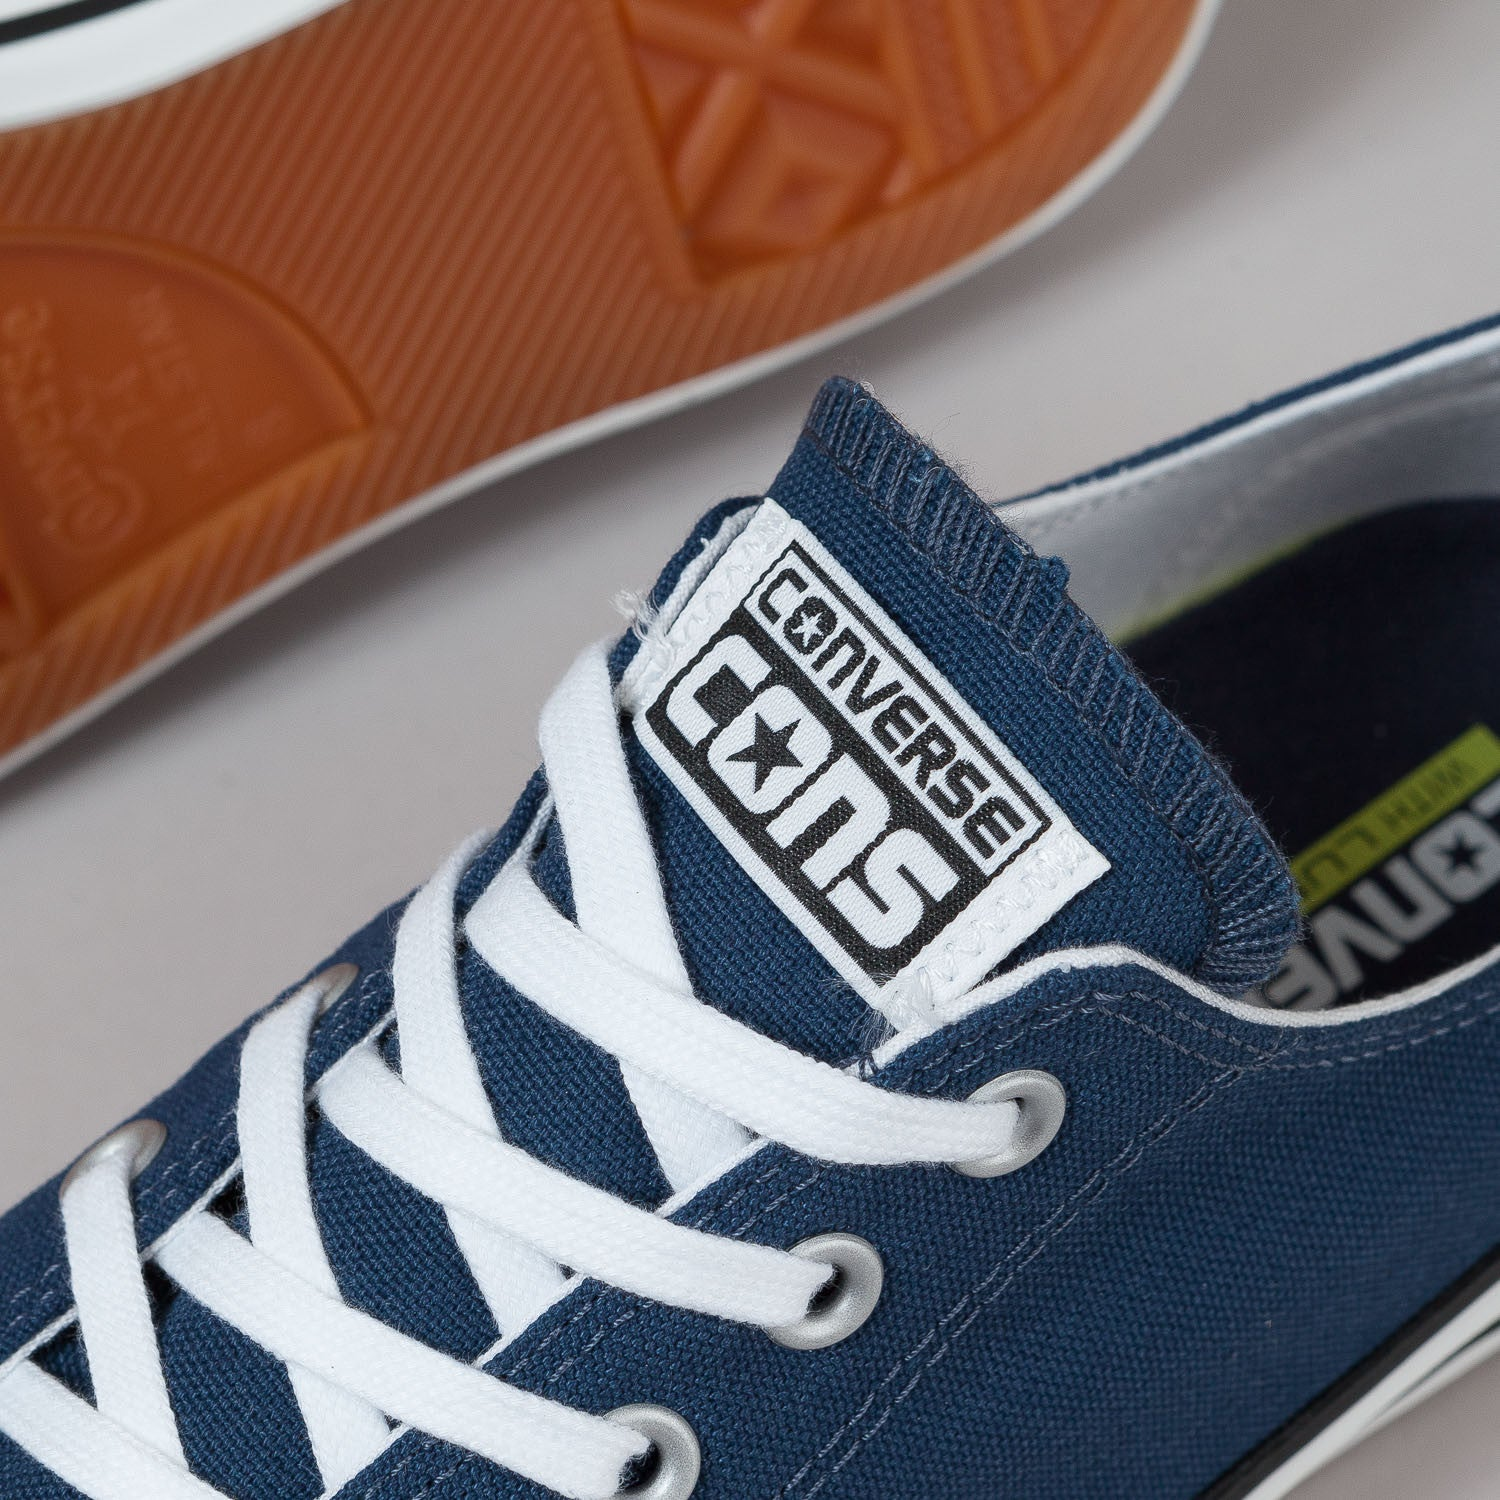 Converse CTAS Pro Ox Shoes - Navy / White / Black